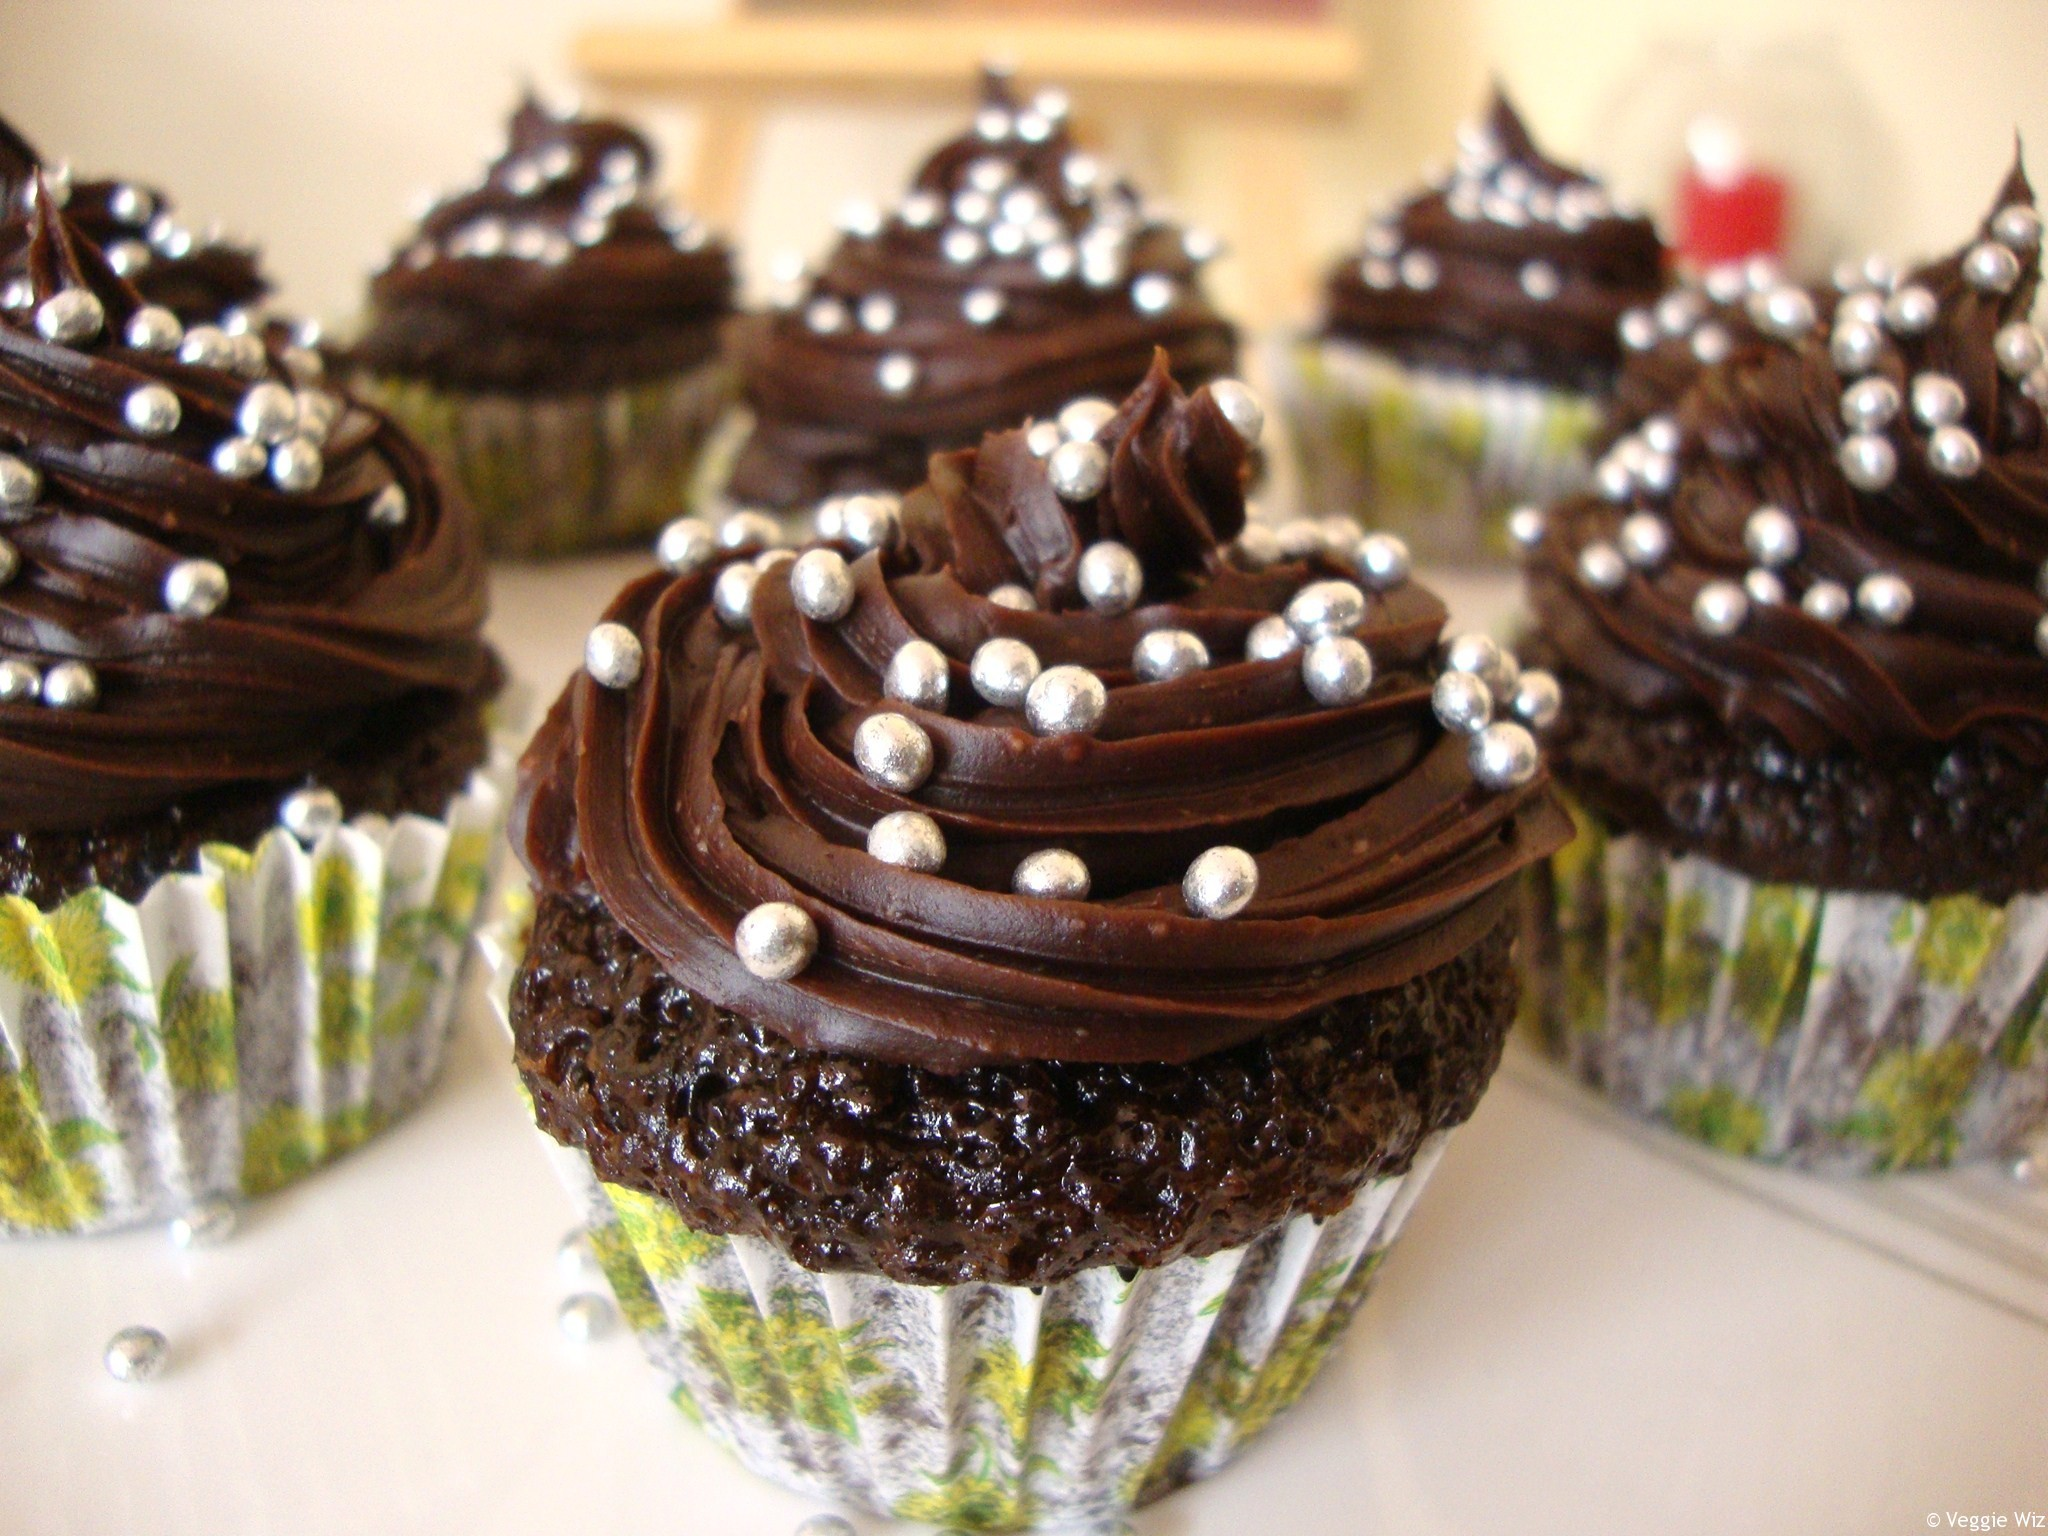 Res: 2048x1536, Chocolate Cupcake Wallpaper HD wallpaper background